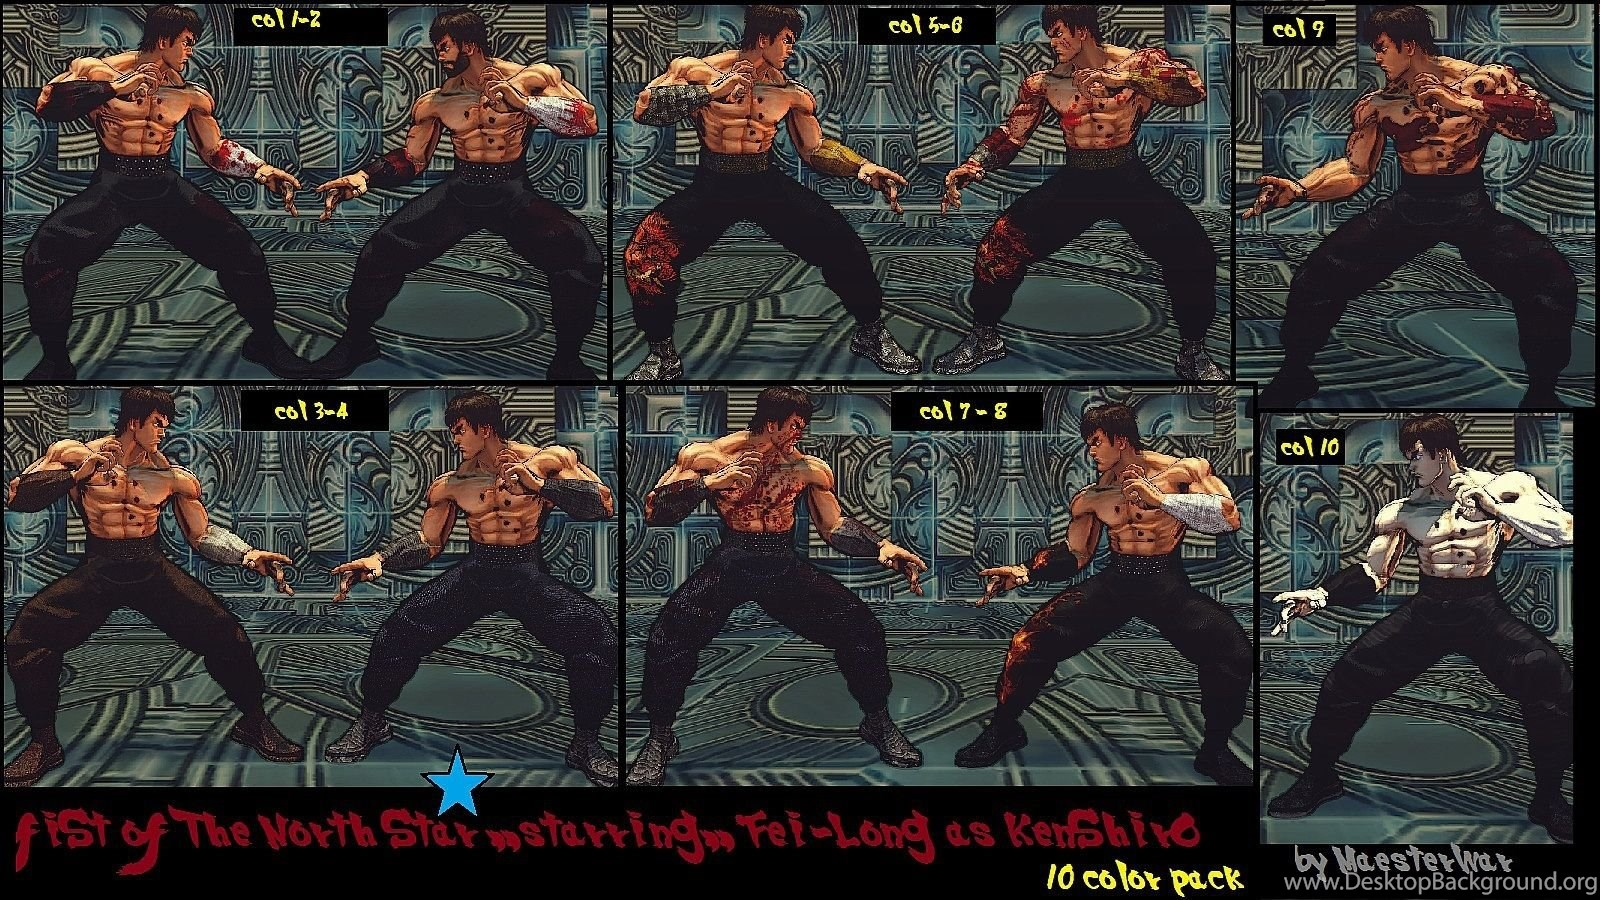 Fei Long Kenshiro Fist Of The North Star 10 Col By Maesterlee On